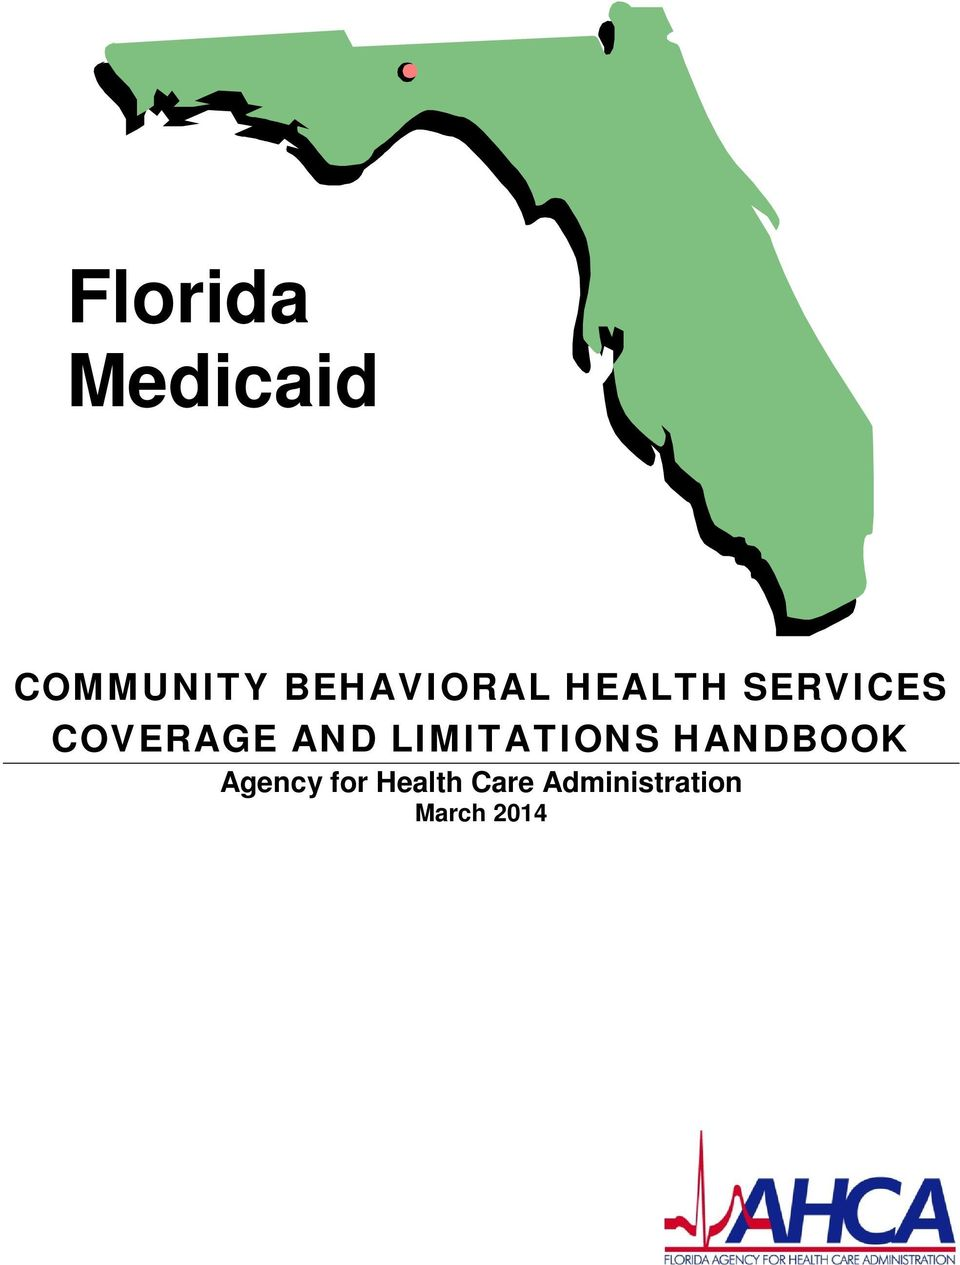 COVERAGE AND LIMITATIONS HANDBOOK